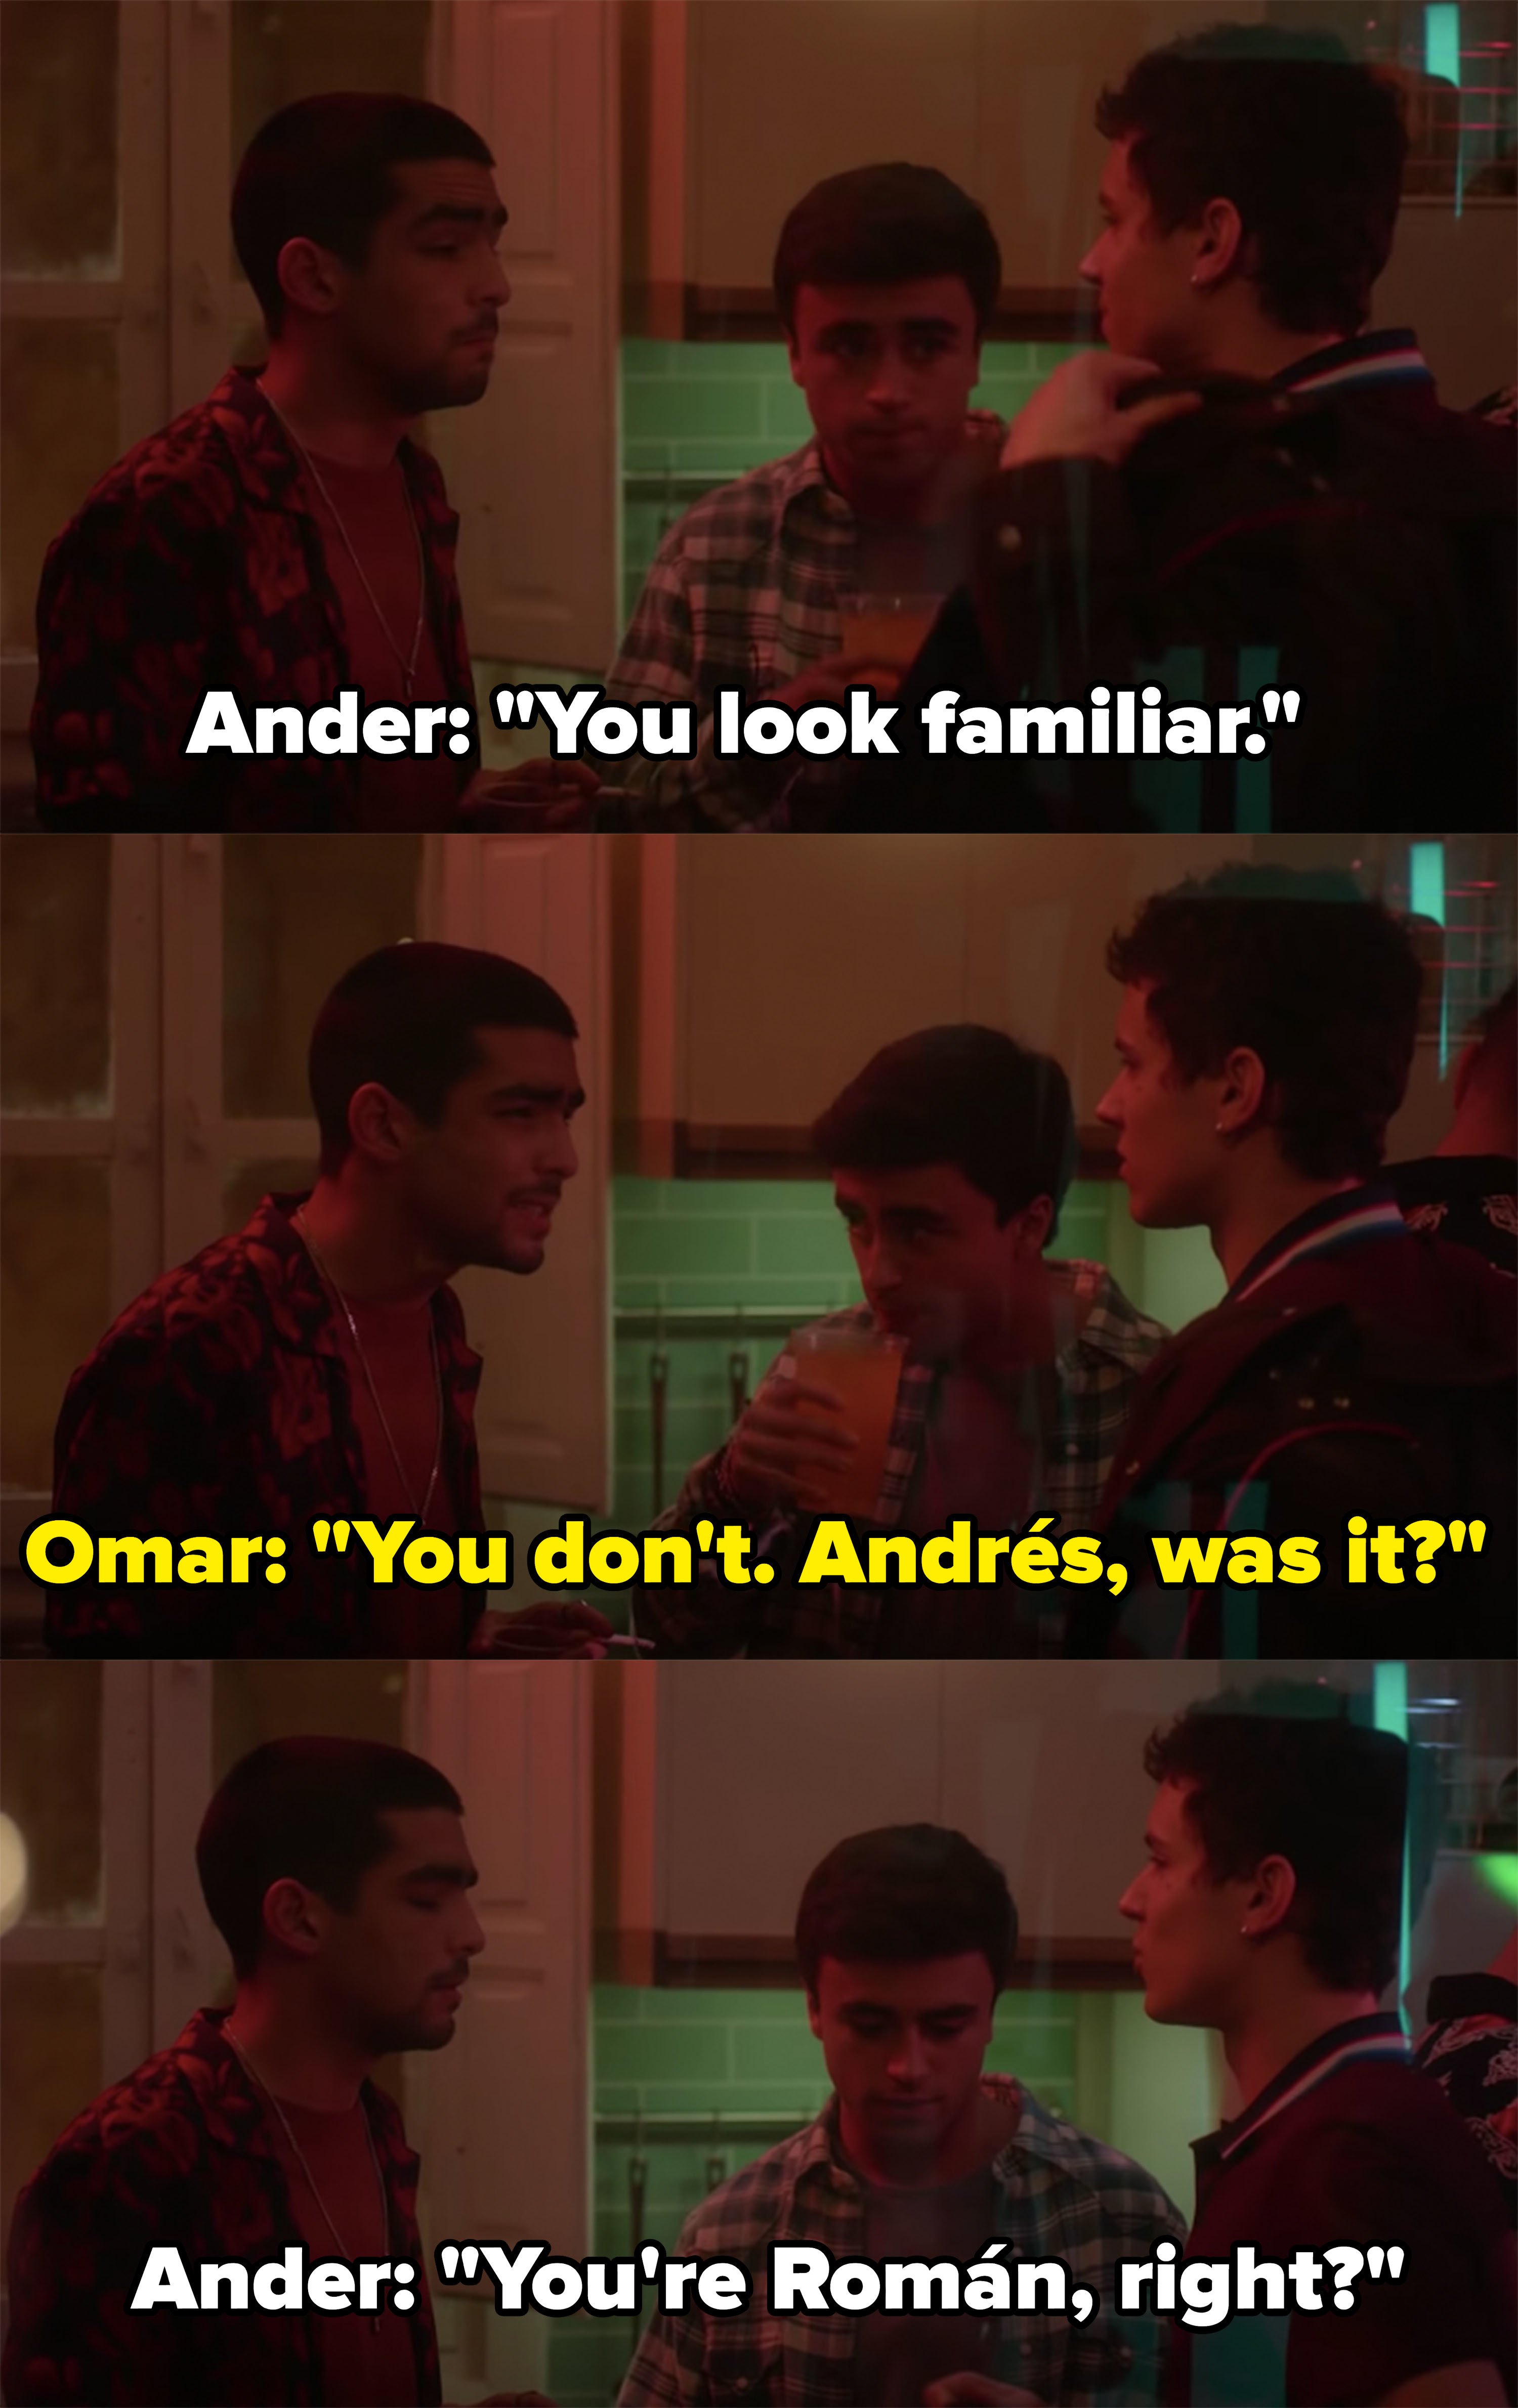 Omar and Ander pretend not to know each other at a party and purposefully call each other the wrong names